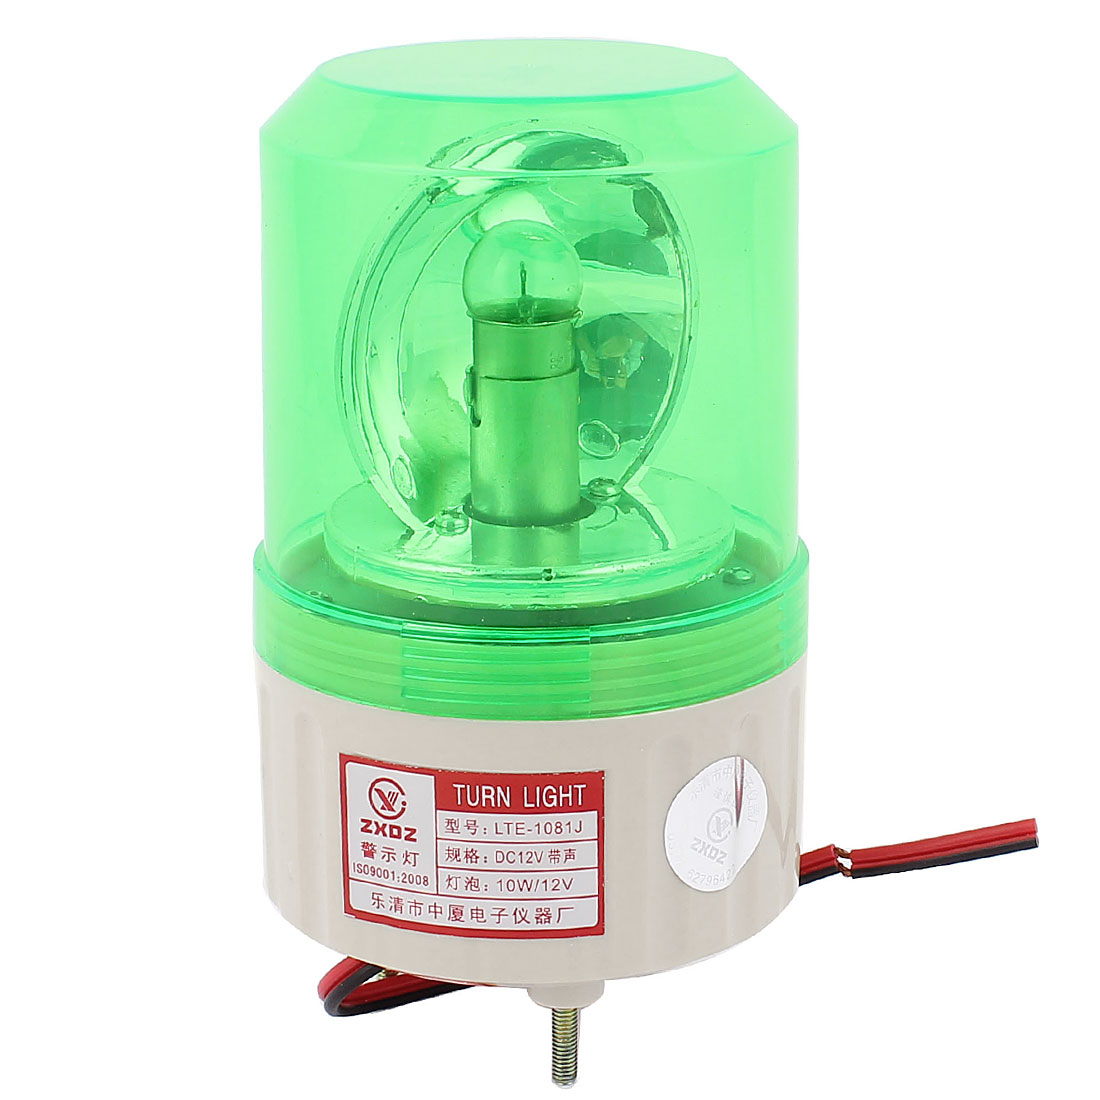 DC 12V Buzzer Sound Rotating Industrial Signal Warning Lamp Green